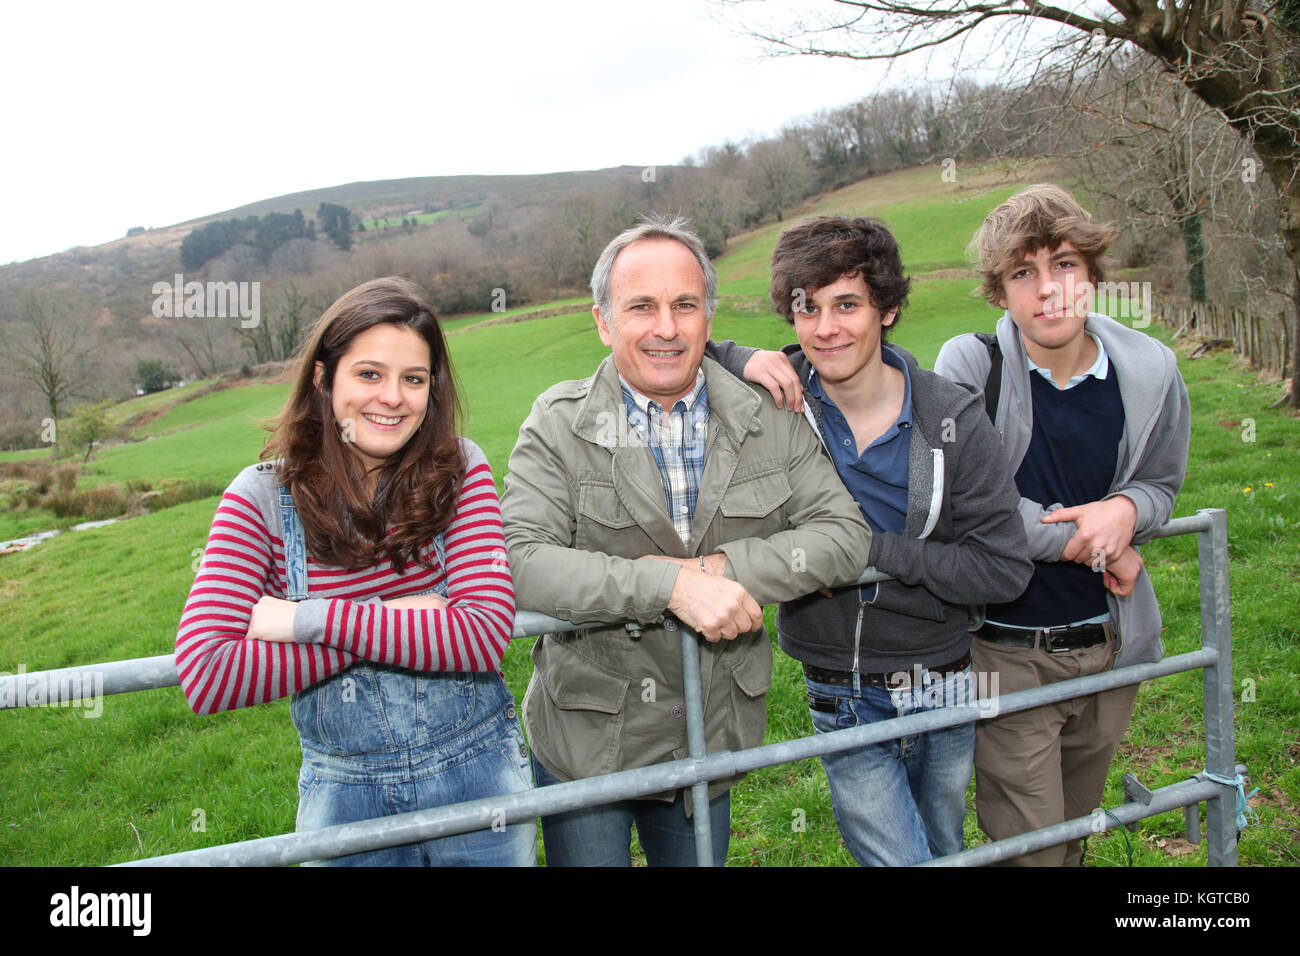 Adult man with teenagers in agricultural field - Stock Image